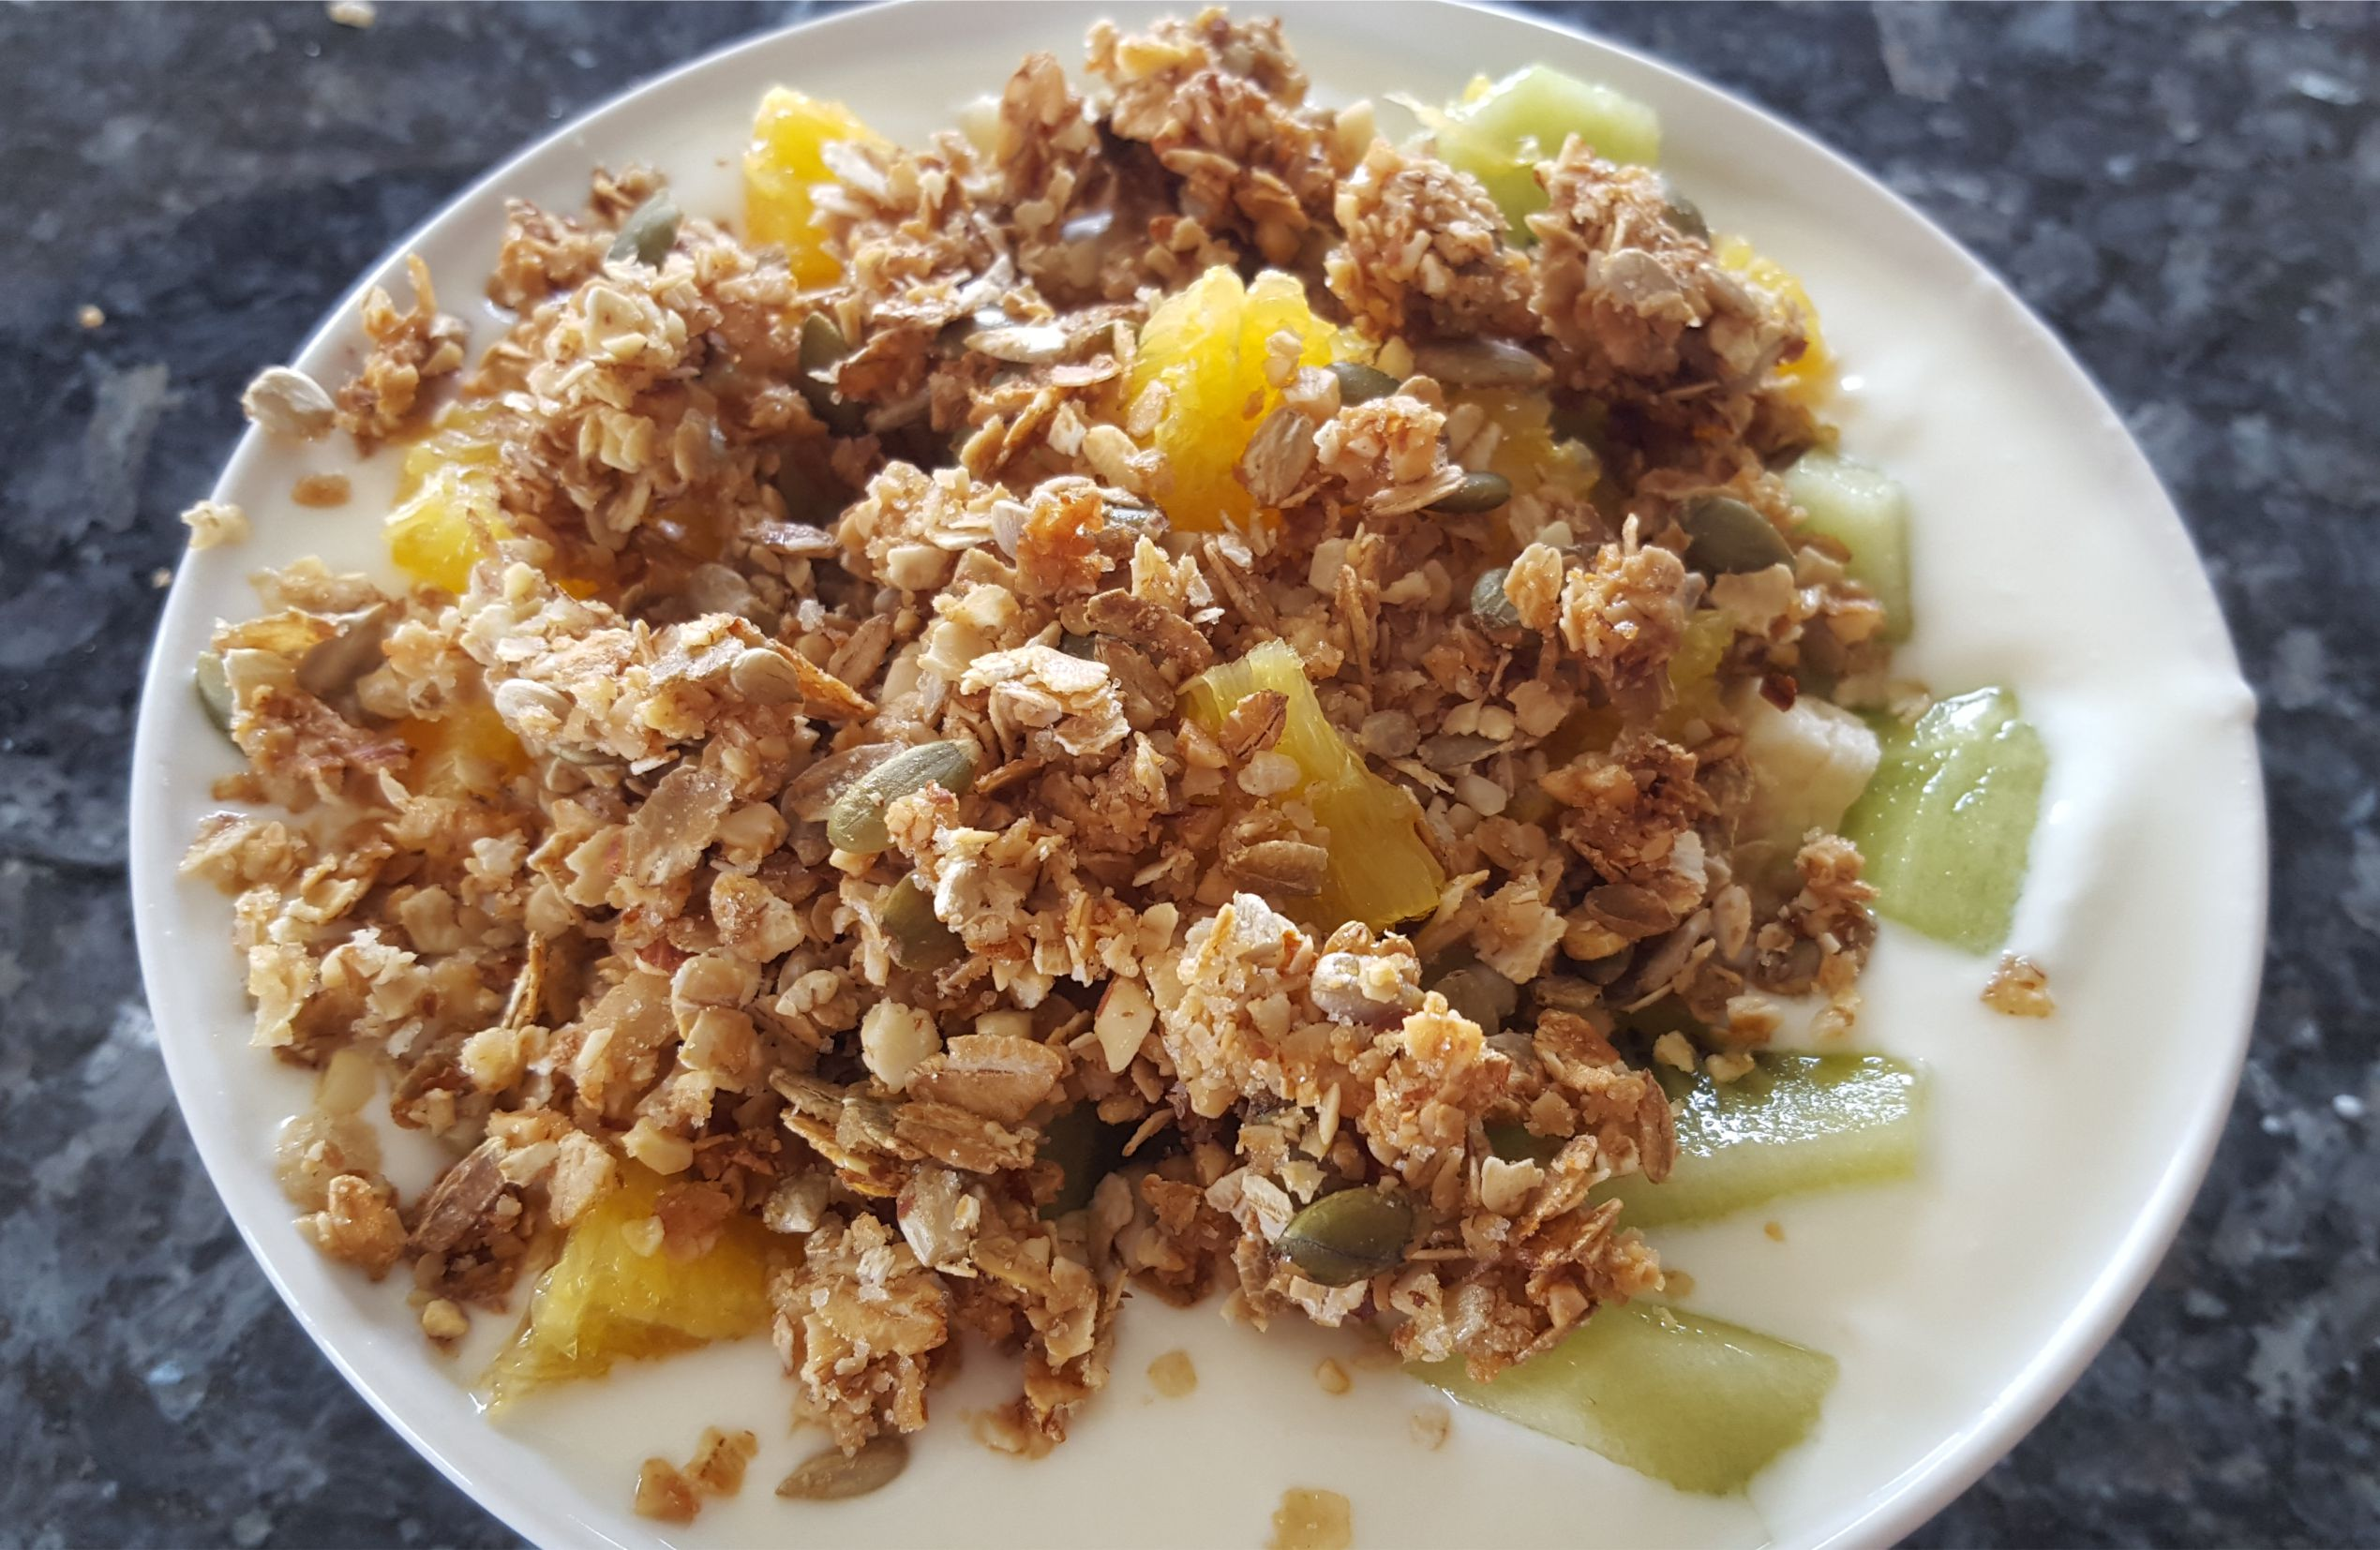 Homemade Muesli breakfast cereal. MomMadeMoments.com